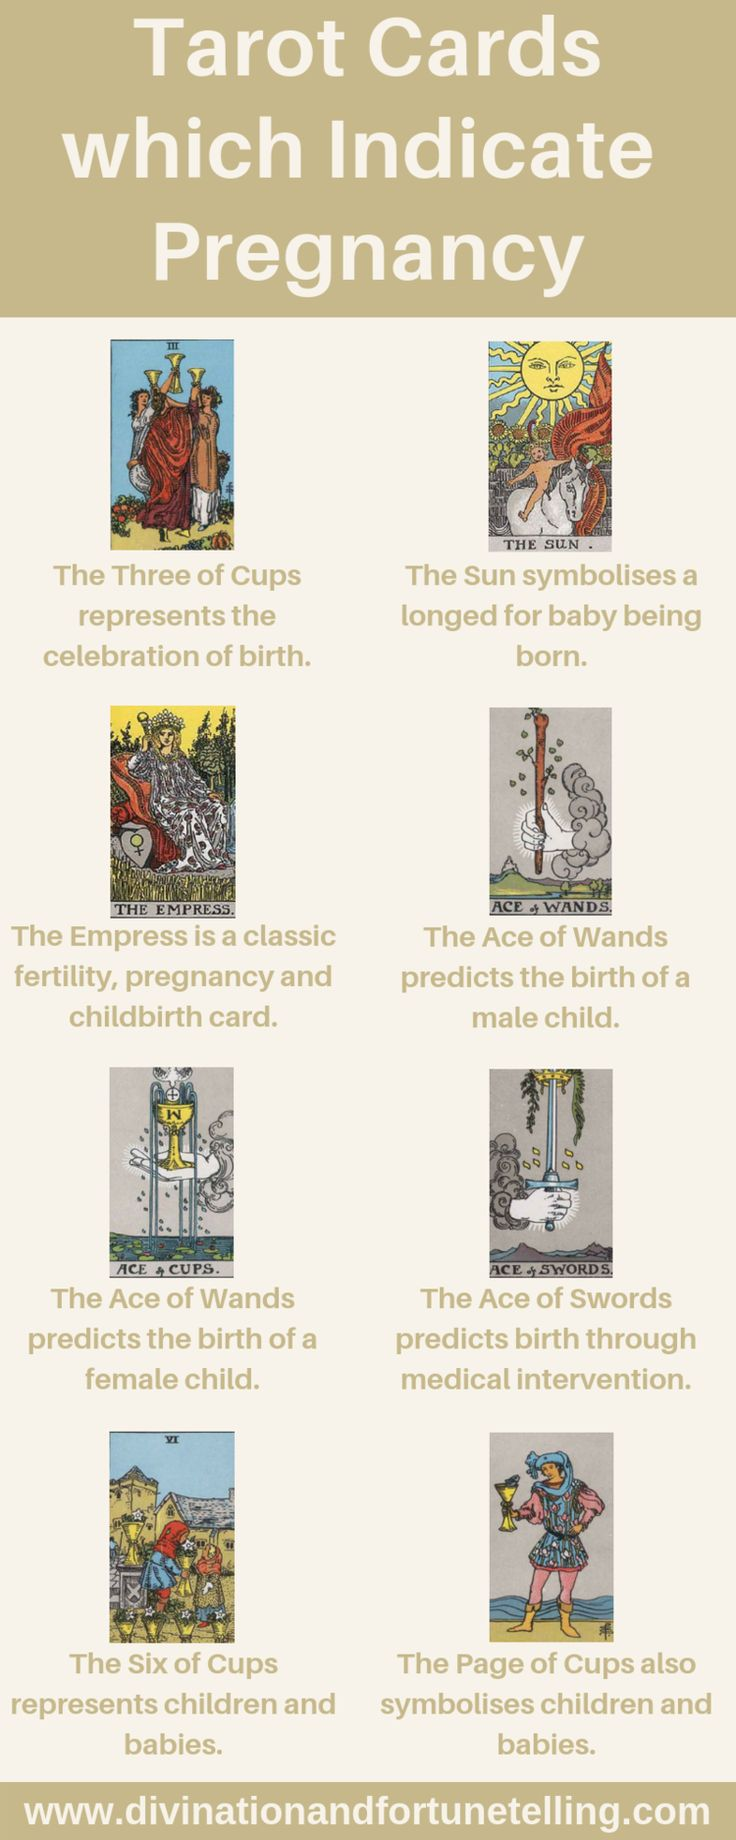 Tarot Cards Which Indicate Pregnancy